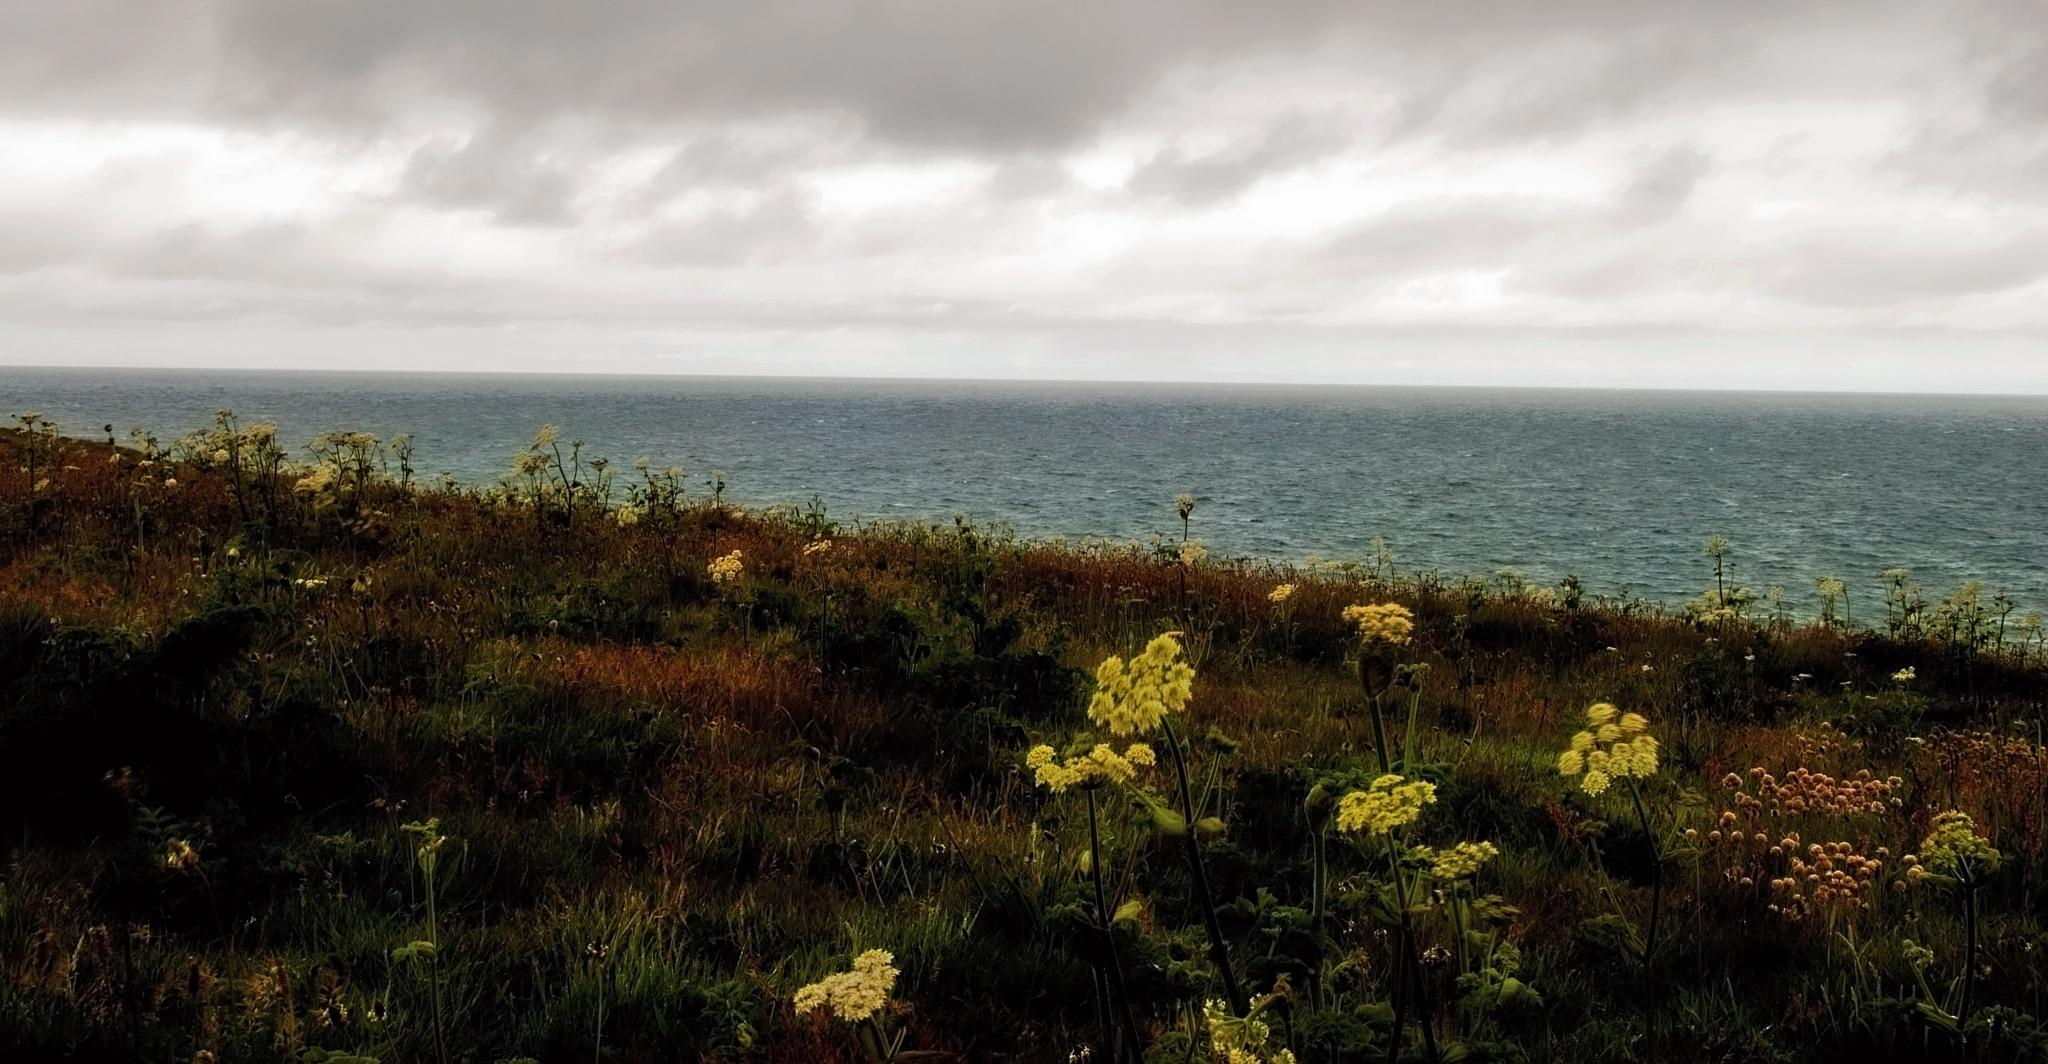 Flowers by the sea by MADOLDIE